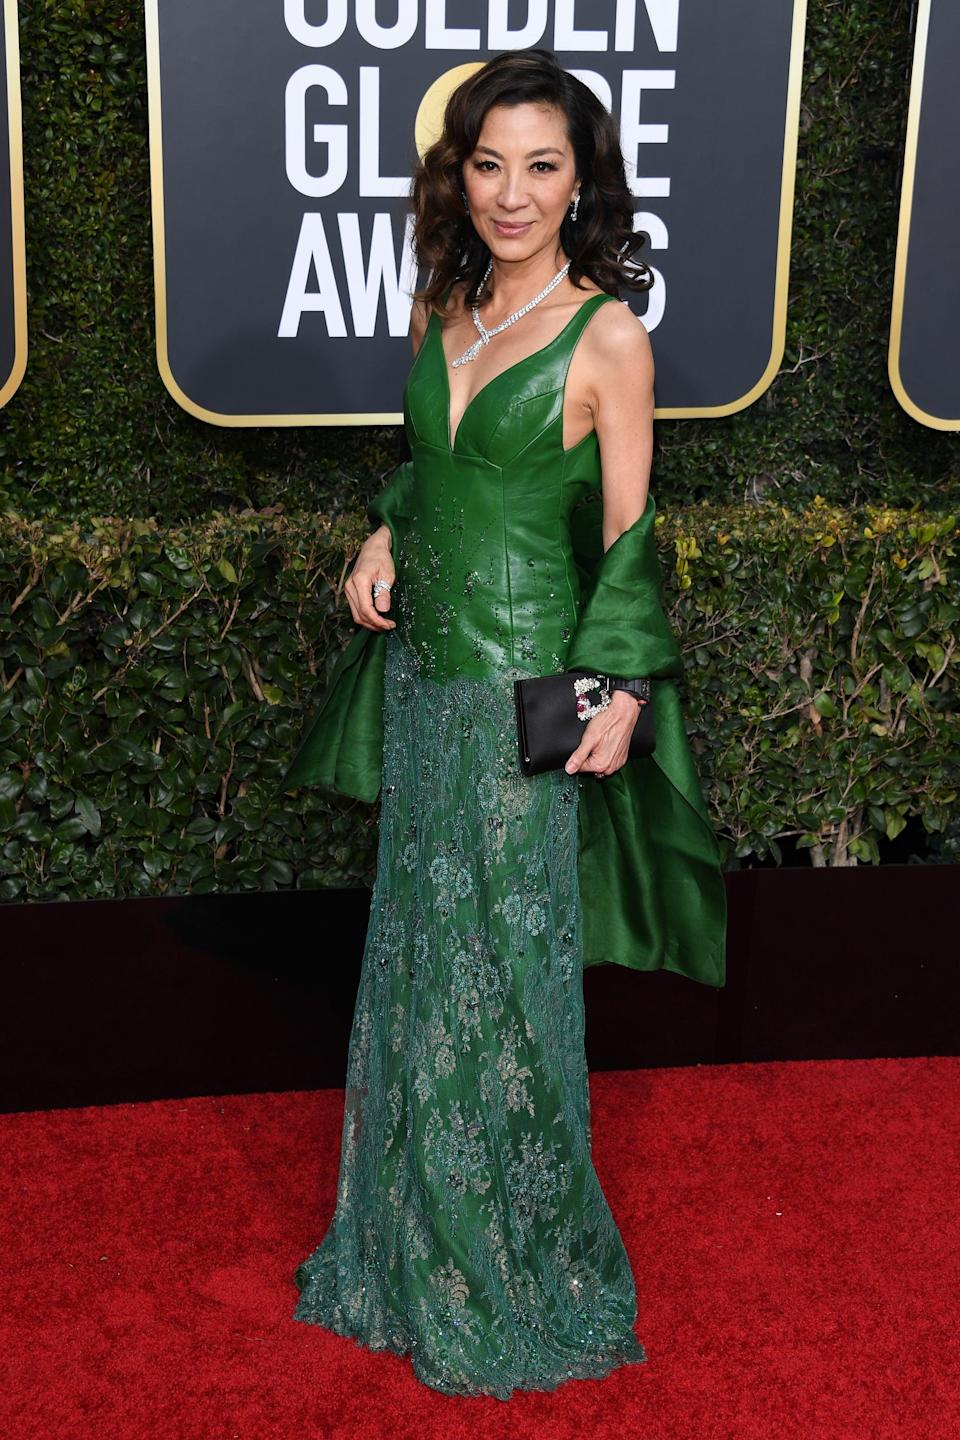 <p>Wearing an emerald gown.</p>